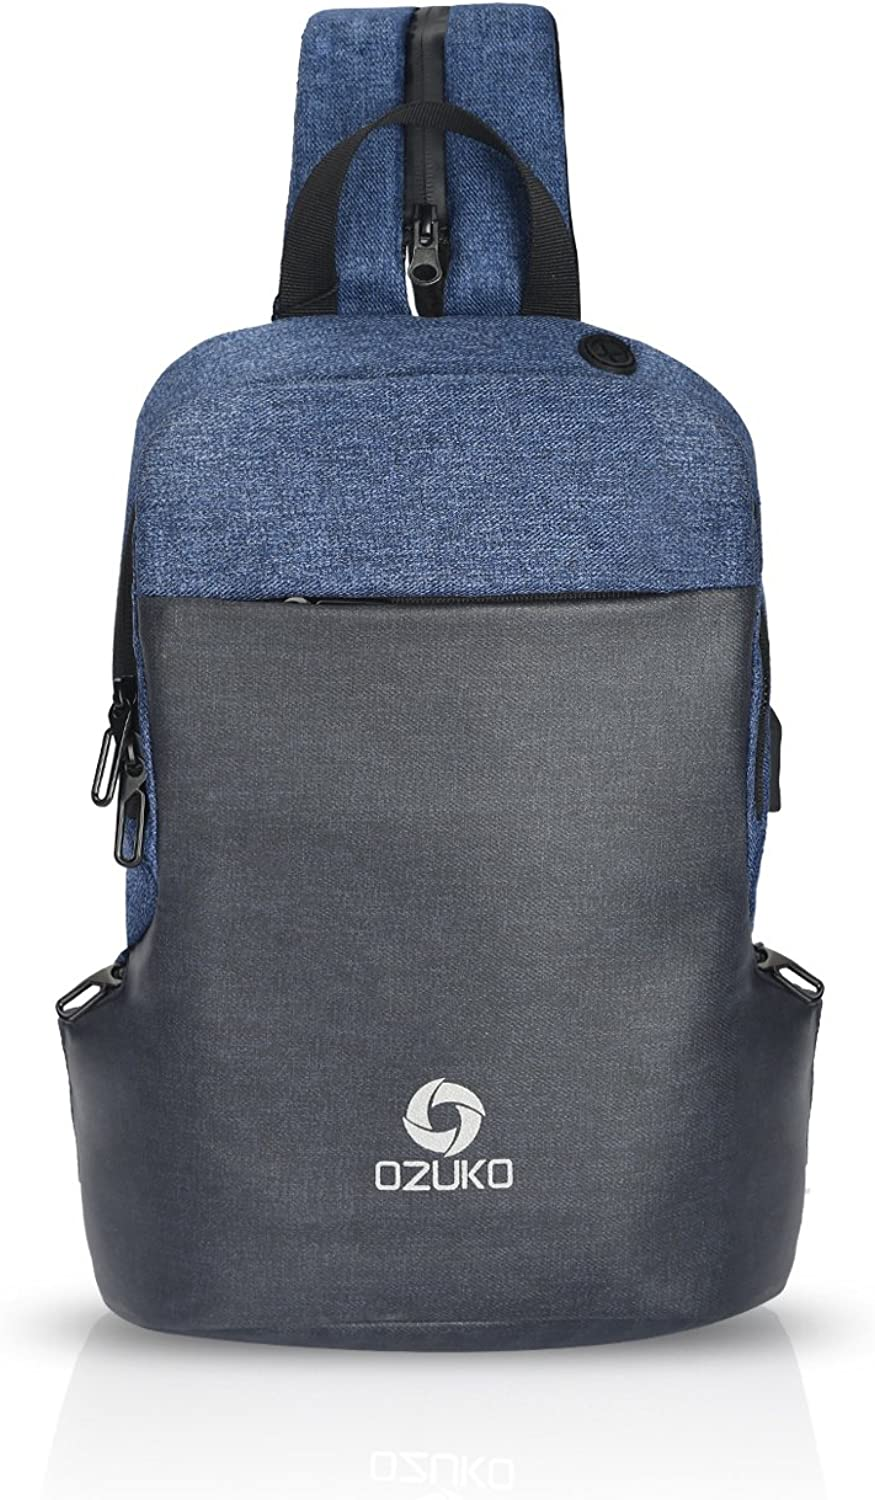 cd7f26abe585 FANDARE Casual Sling Bag Backpack with Earphone Hole Shoulder ...